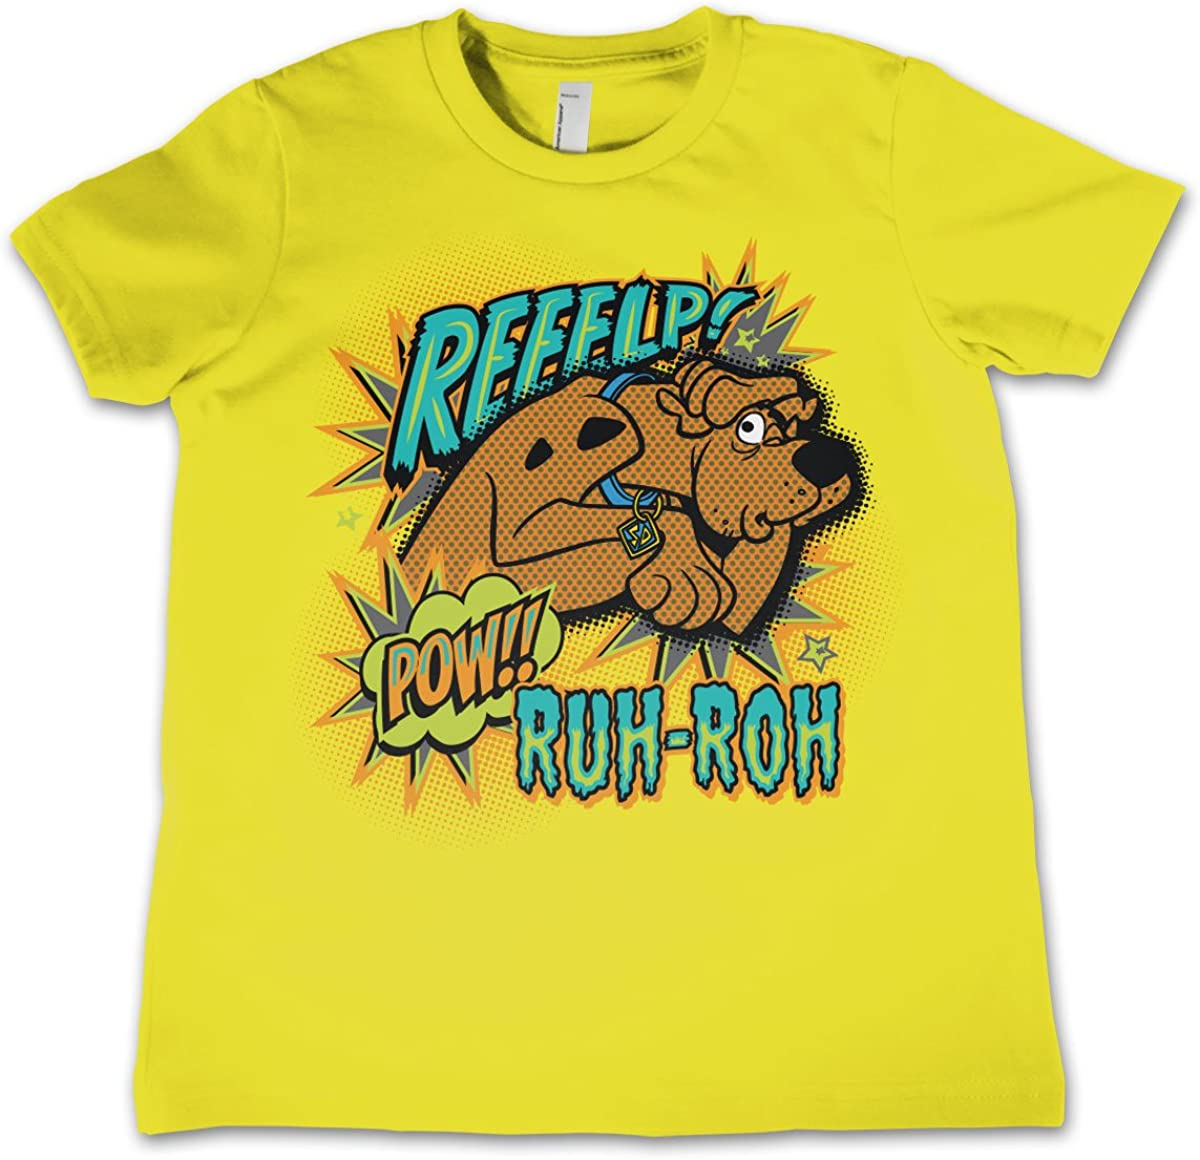 Officially Licensed Scooby Doo Scooby Doo Reeelp Kids T-Shirt Age 3-12 Years